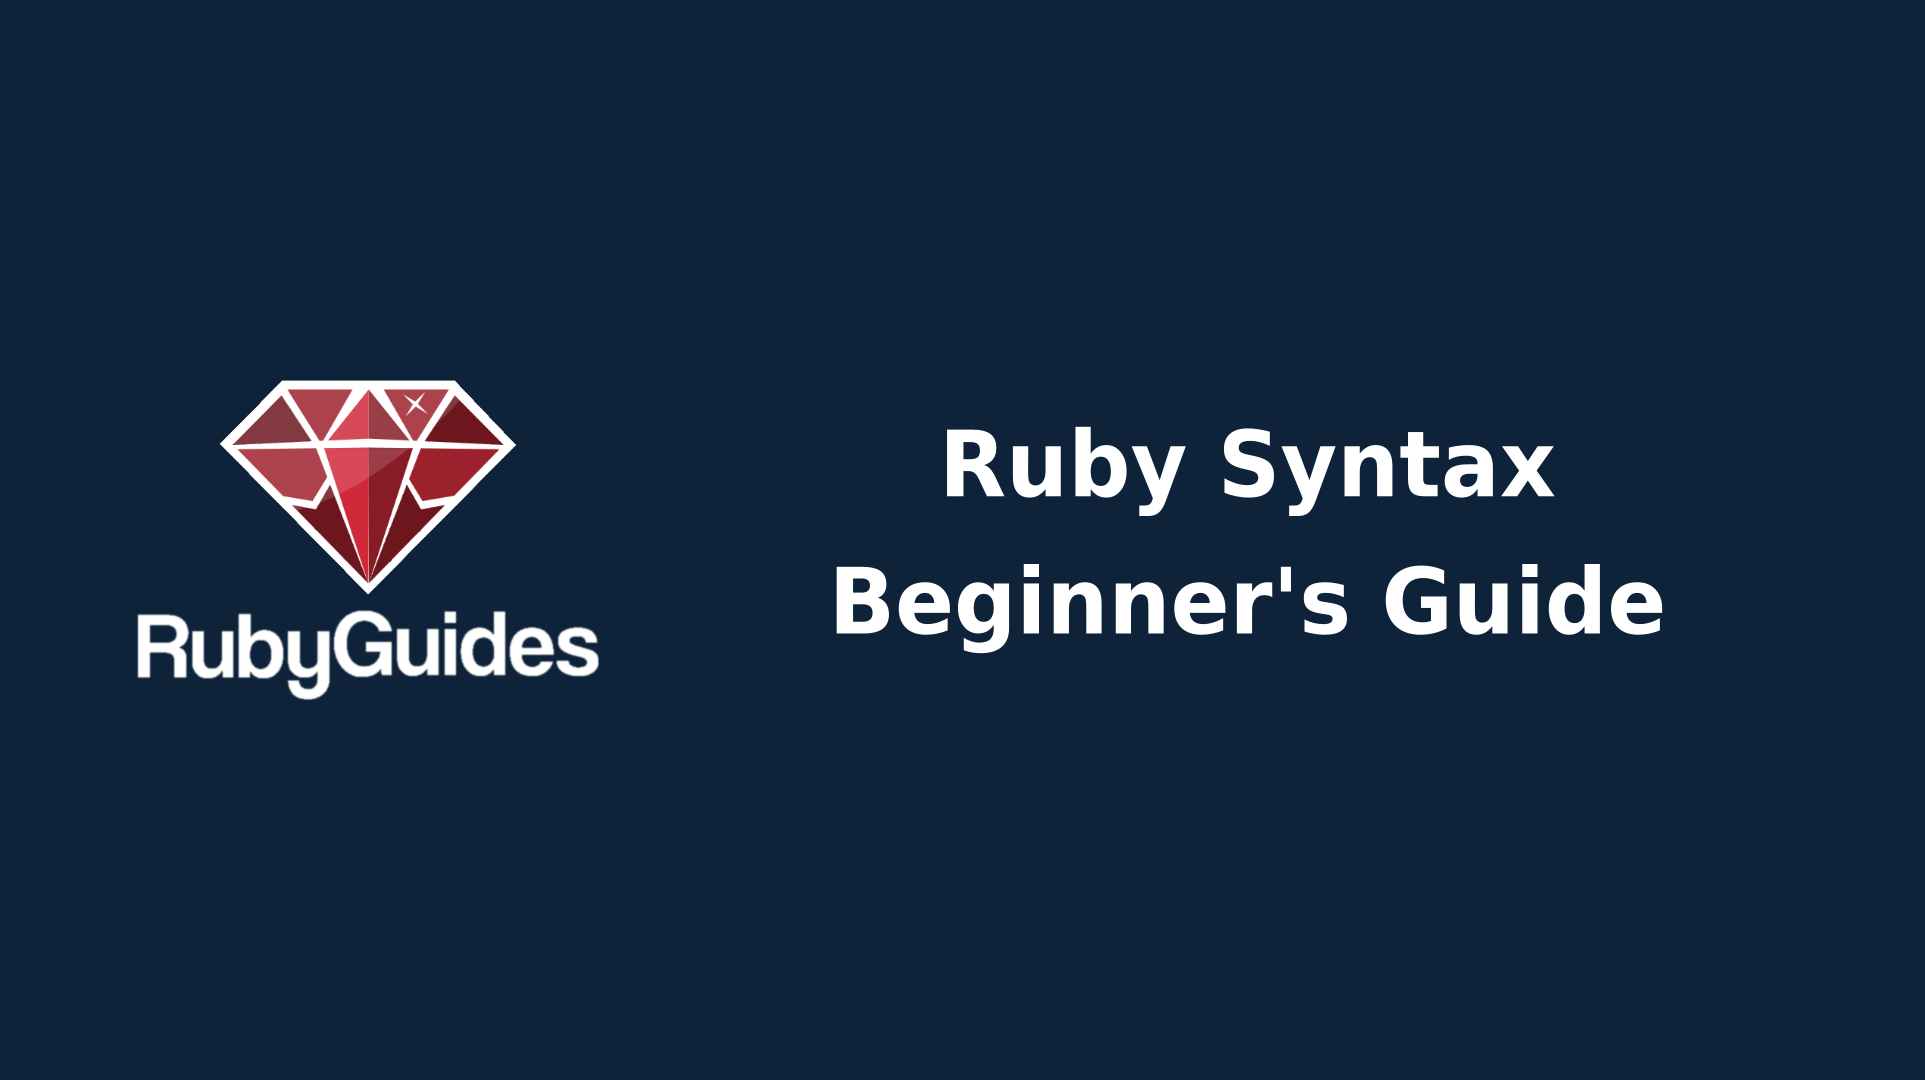 Ruby Syntax Reference For Beginners